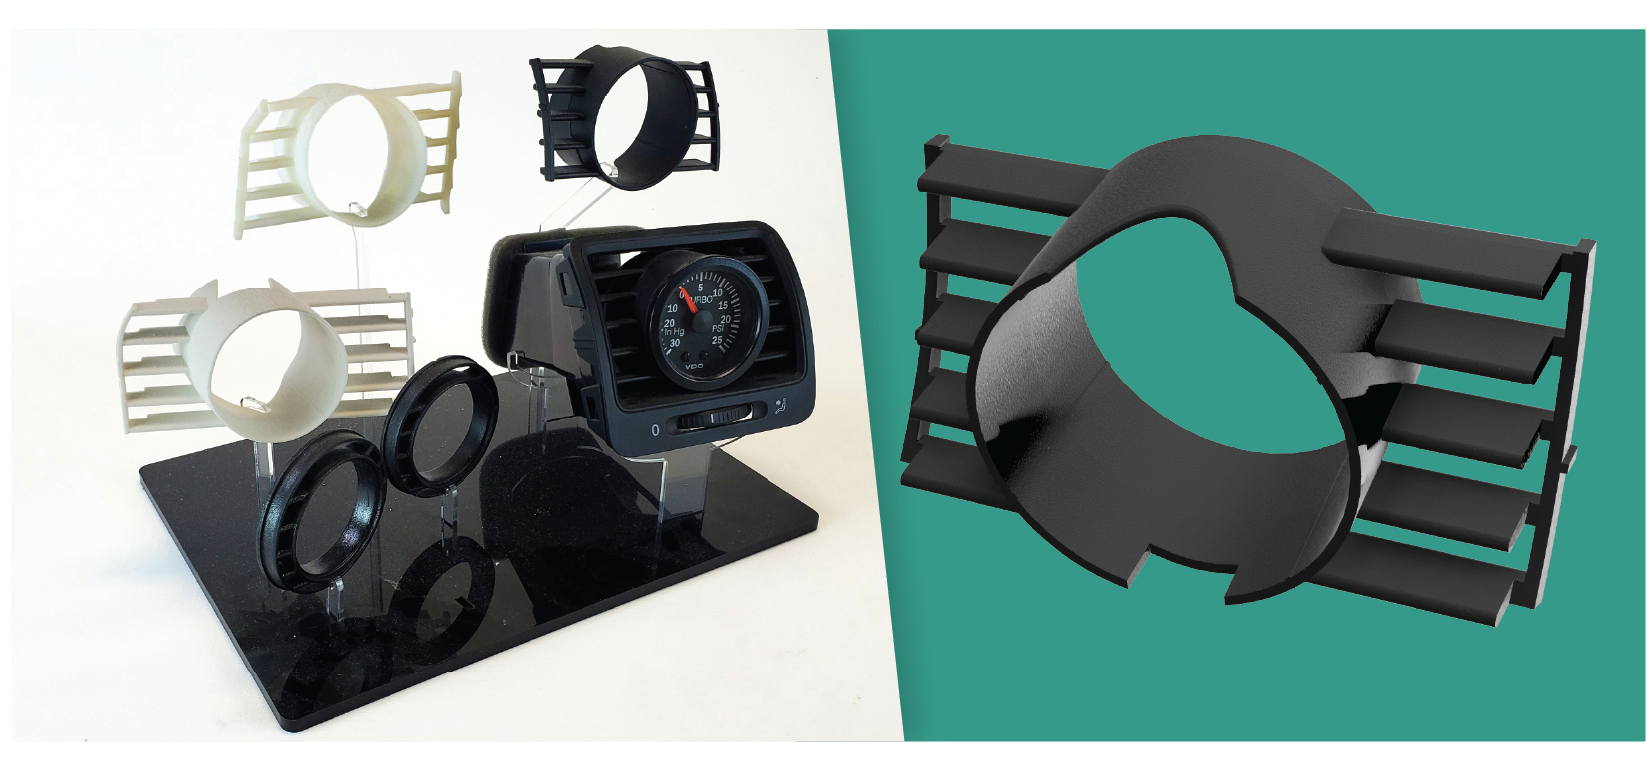 Aftermarket turbo mount Prototyping for Automotive Industry